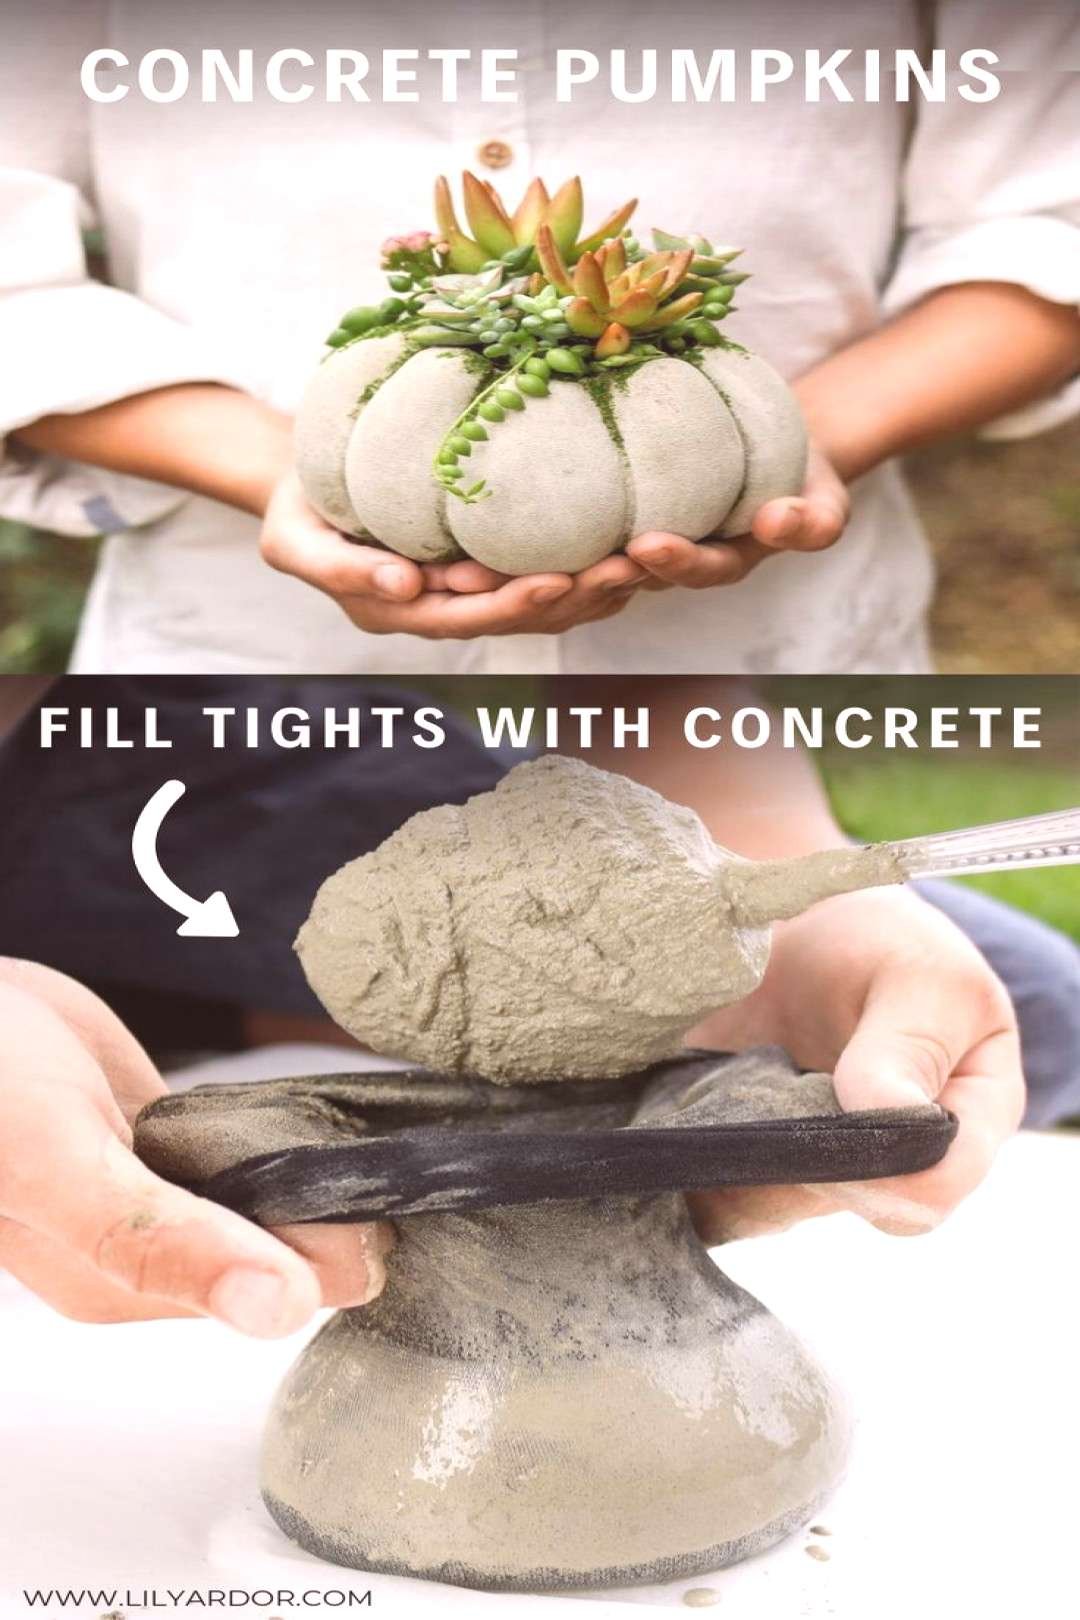 Heres how you can make easy concrete pumpkin by fill up tights. Takes about 20 minutes to make.